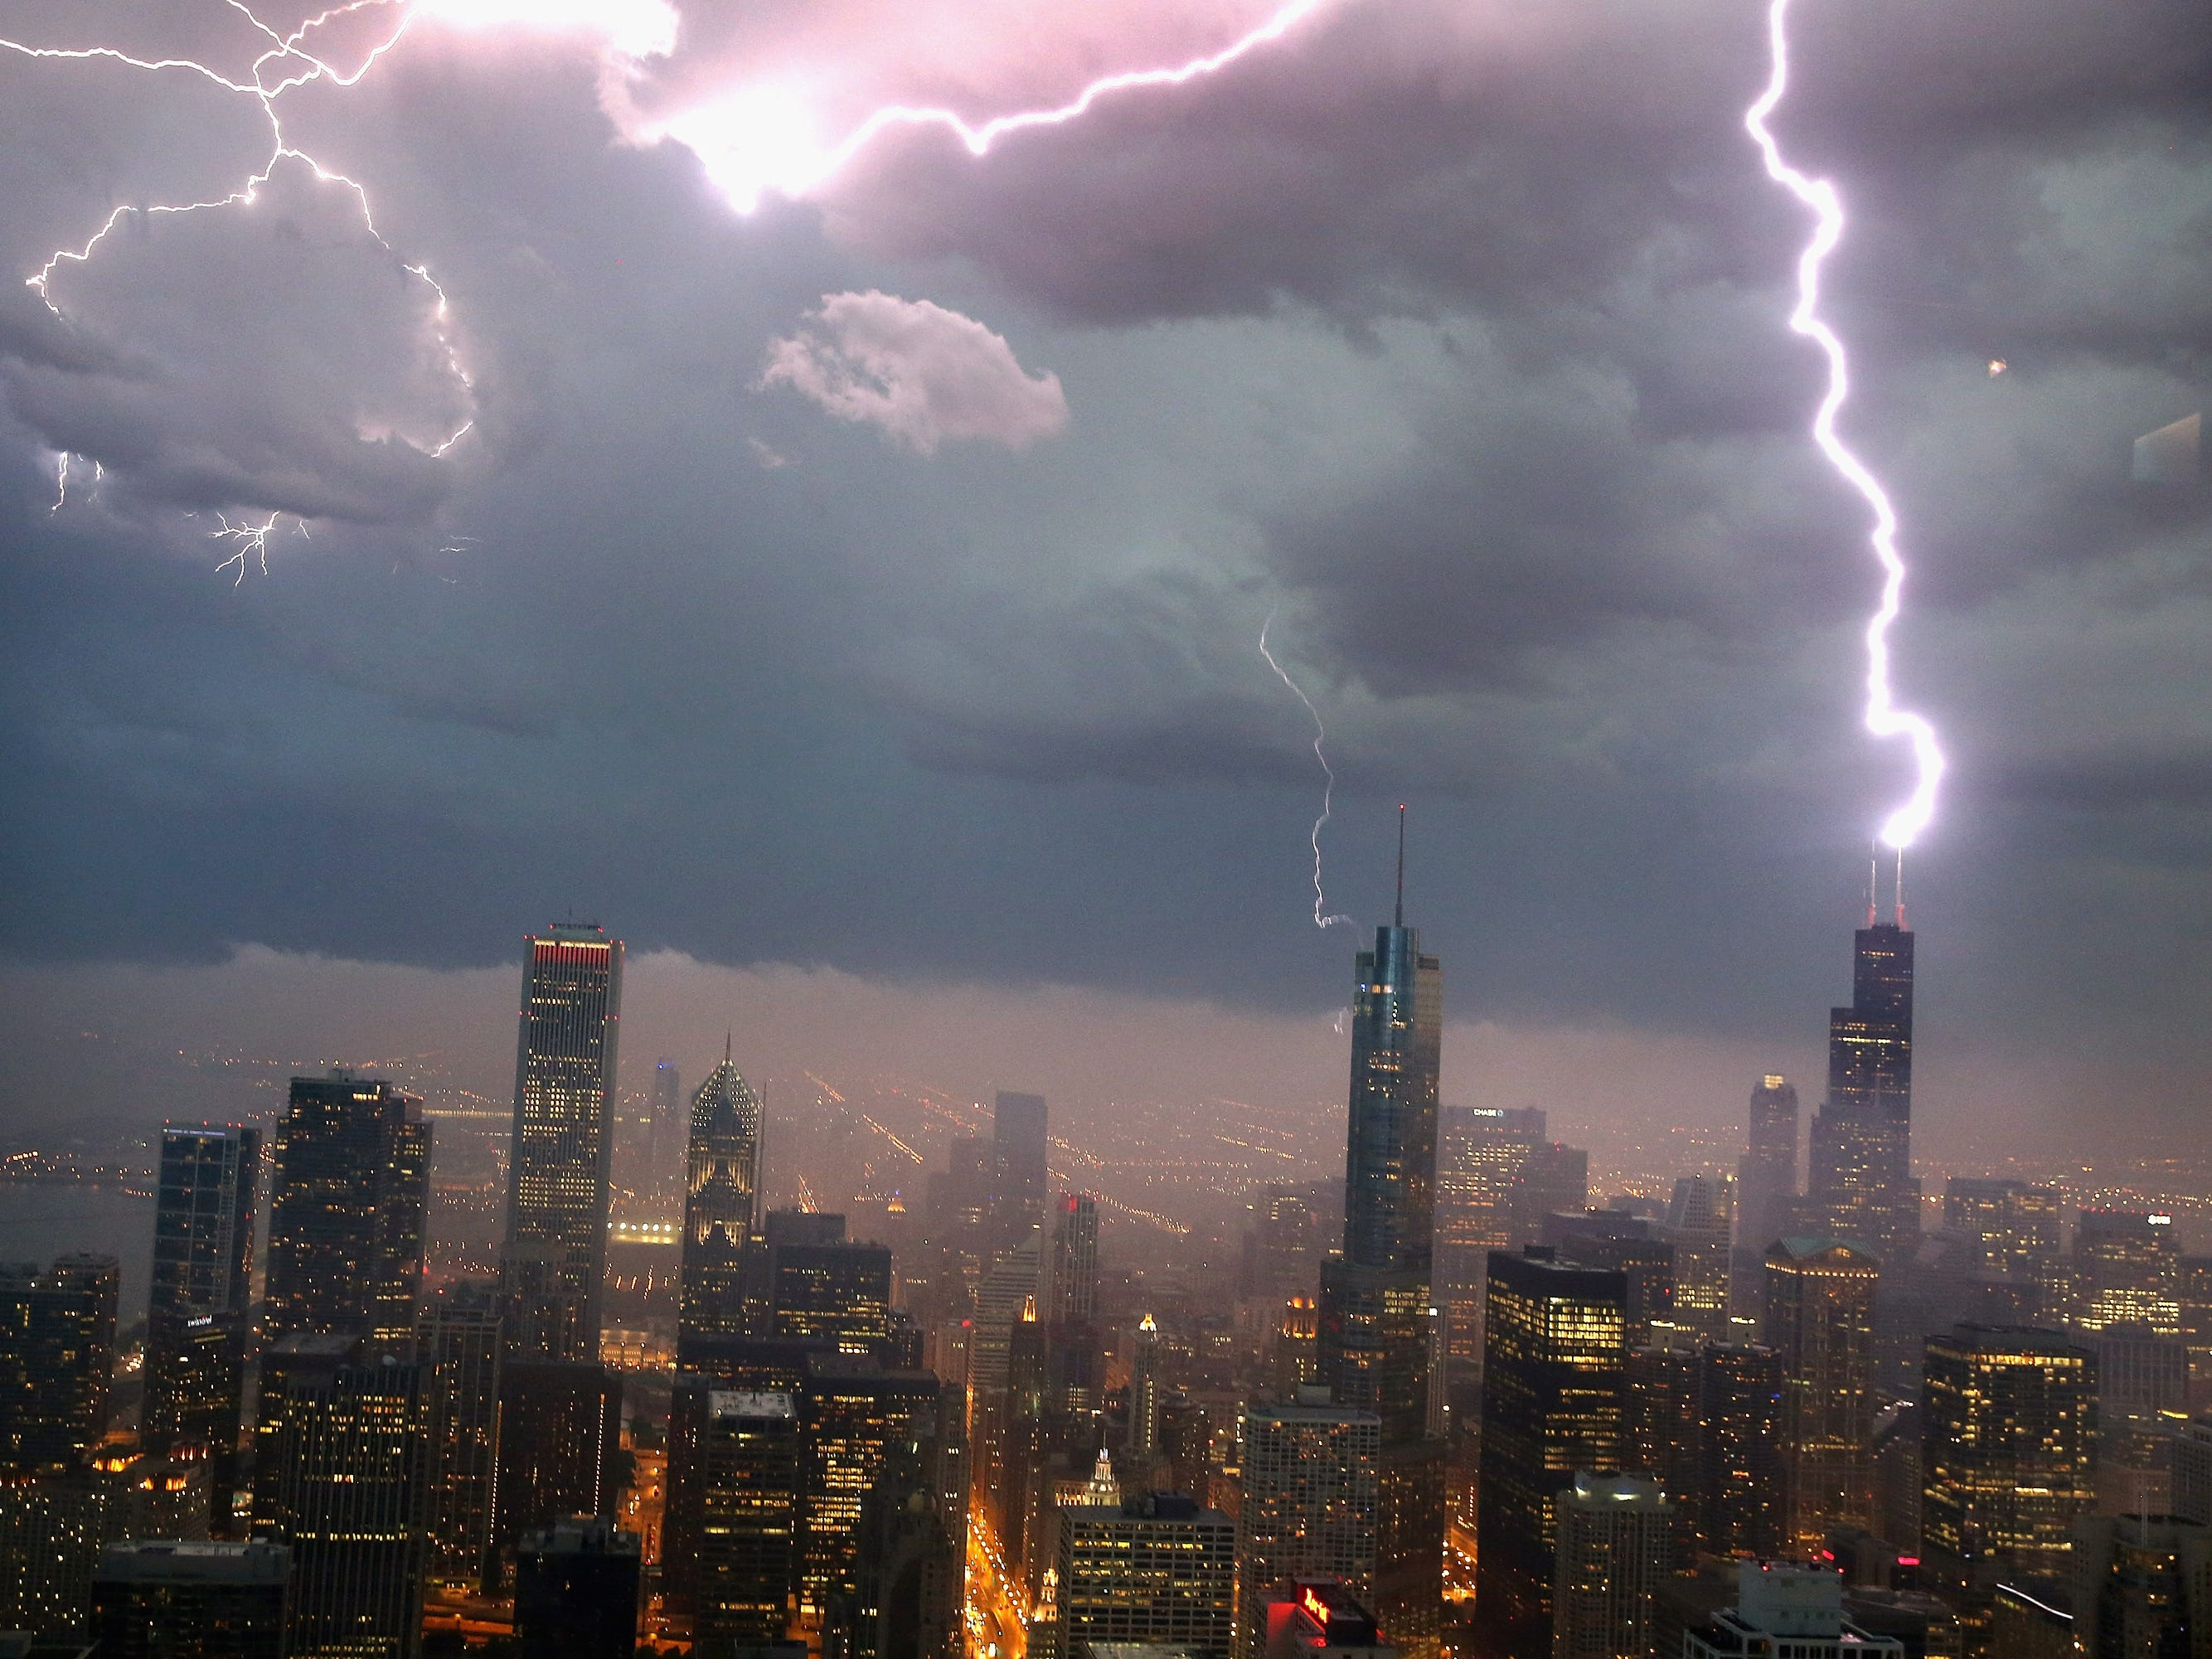 FILE - MARCH 16, 2015: It was reported that real estate investment company Blackstone Group is buying Chicago's Willis Tower March 16, 2015. CHICAGO, IL - JUNE 12:  Lightning strikes the Willis Tower (formerly Sears Tower) in downtown on June 12, 2013 in Chicago, Illinois. A massive storm system with heavy rain, high winds, hail and possible tornadoes is expected to move into Illinois and much of the central part of the Midwest today.  (Photo by Scott Olson/Getty Images) ORG XMIT: 531592471 ORIG FILE ID: 170398573